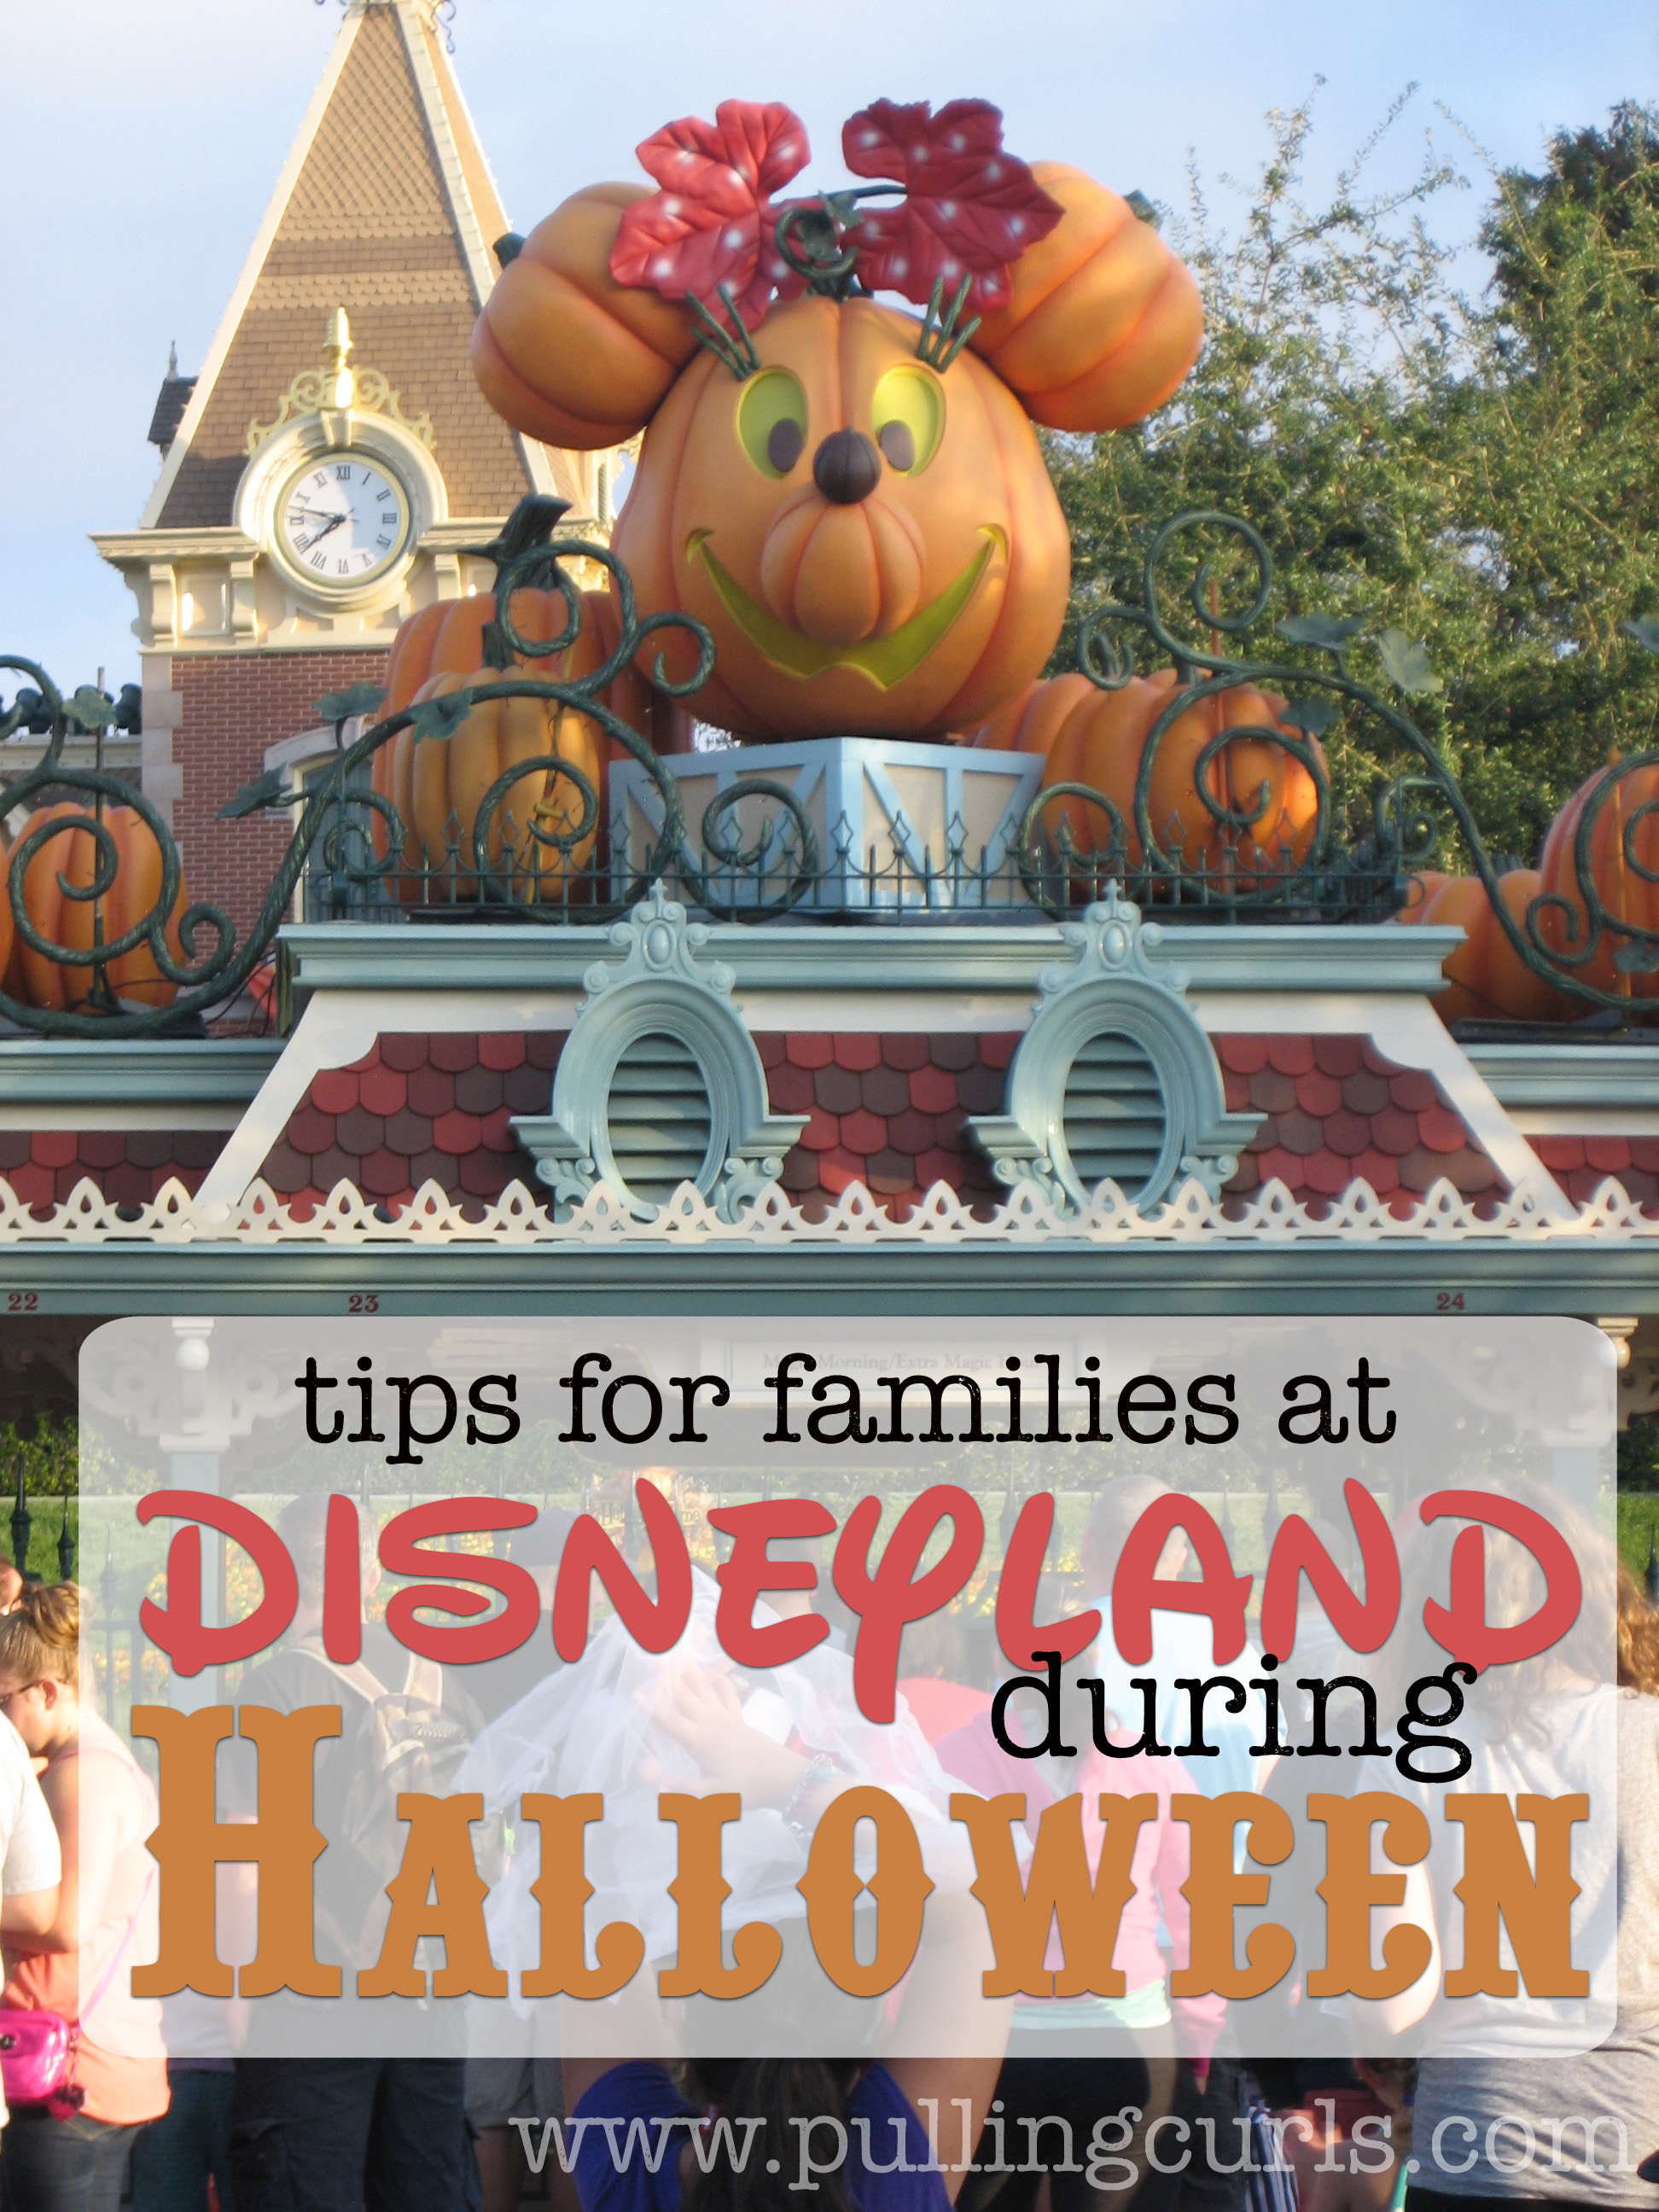 Disneyland at Halloween is a great time to visit the park. Here are 5 things to be aware of before you haunt the park with your family!